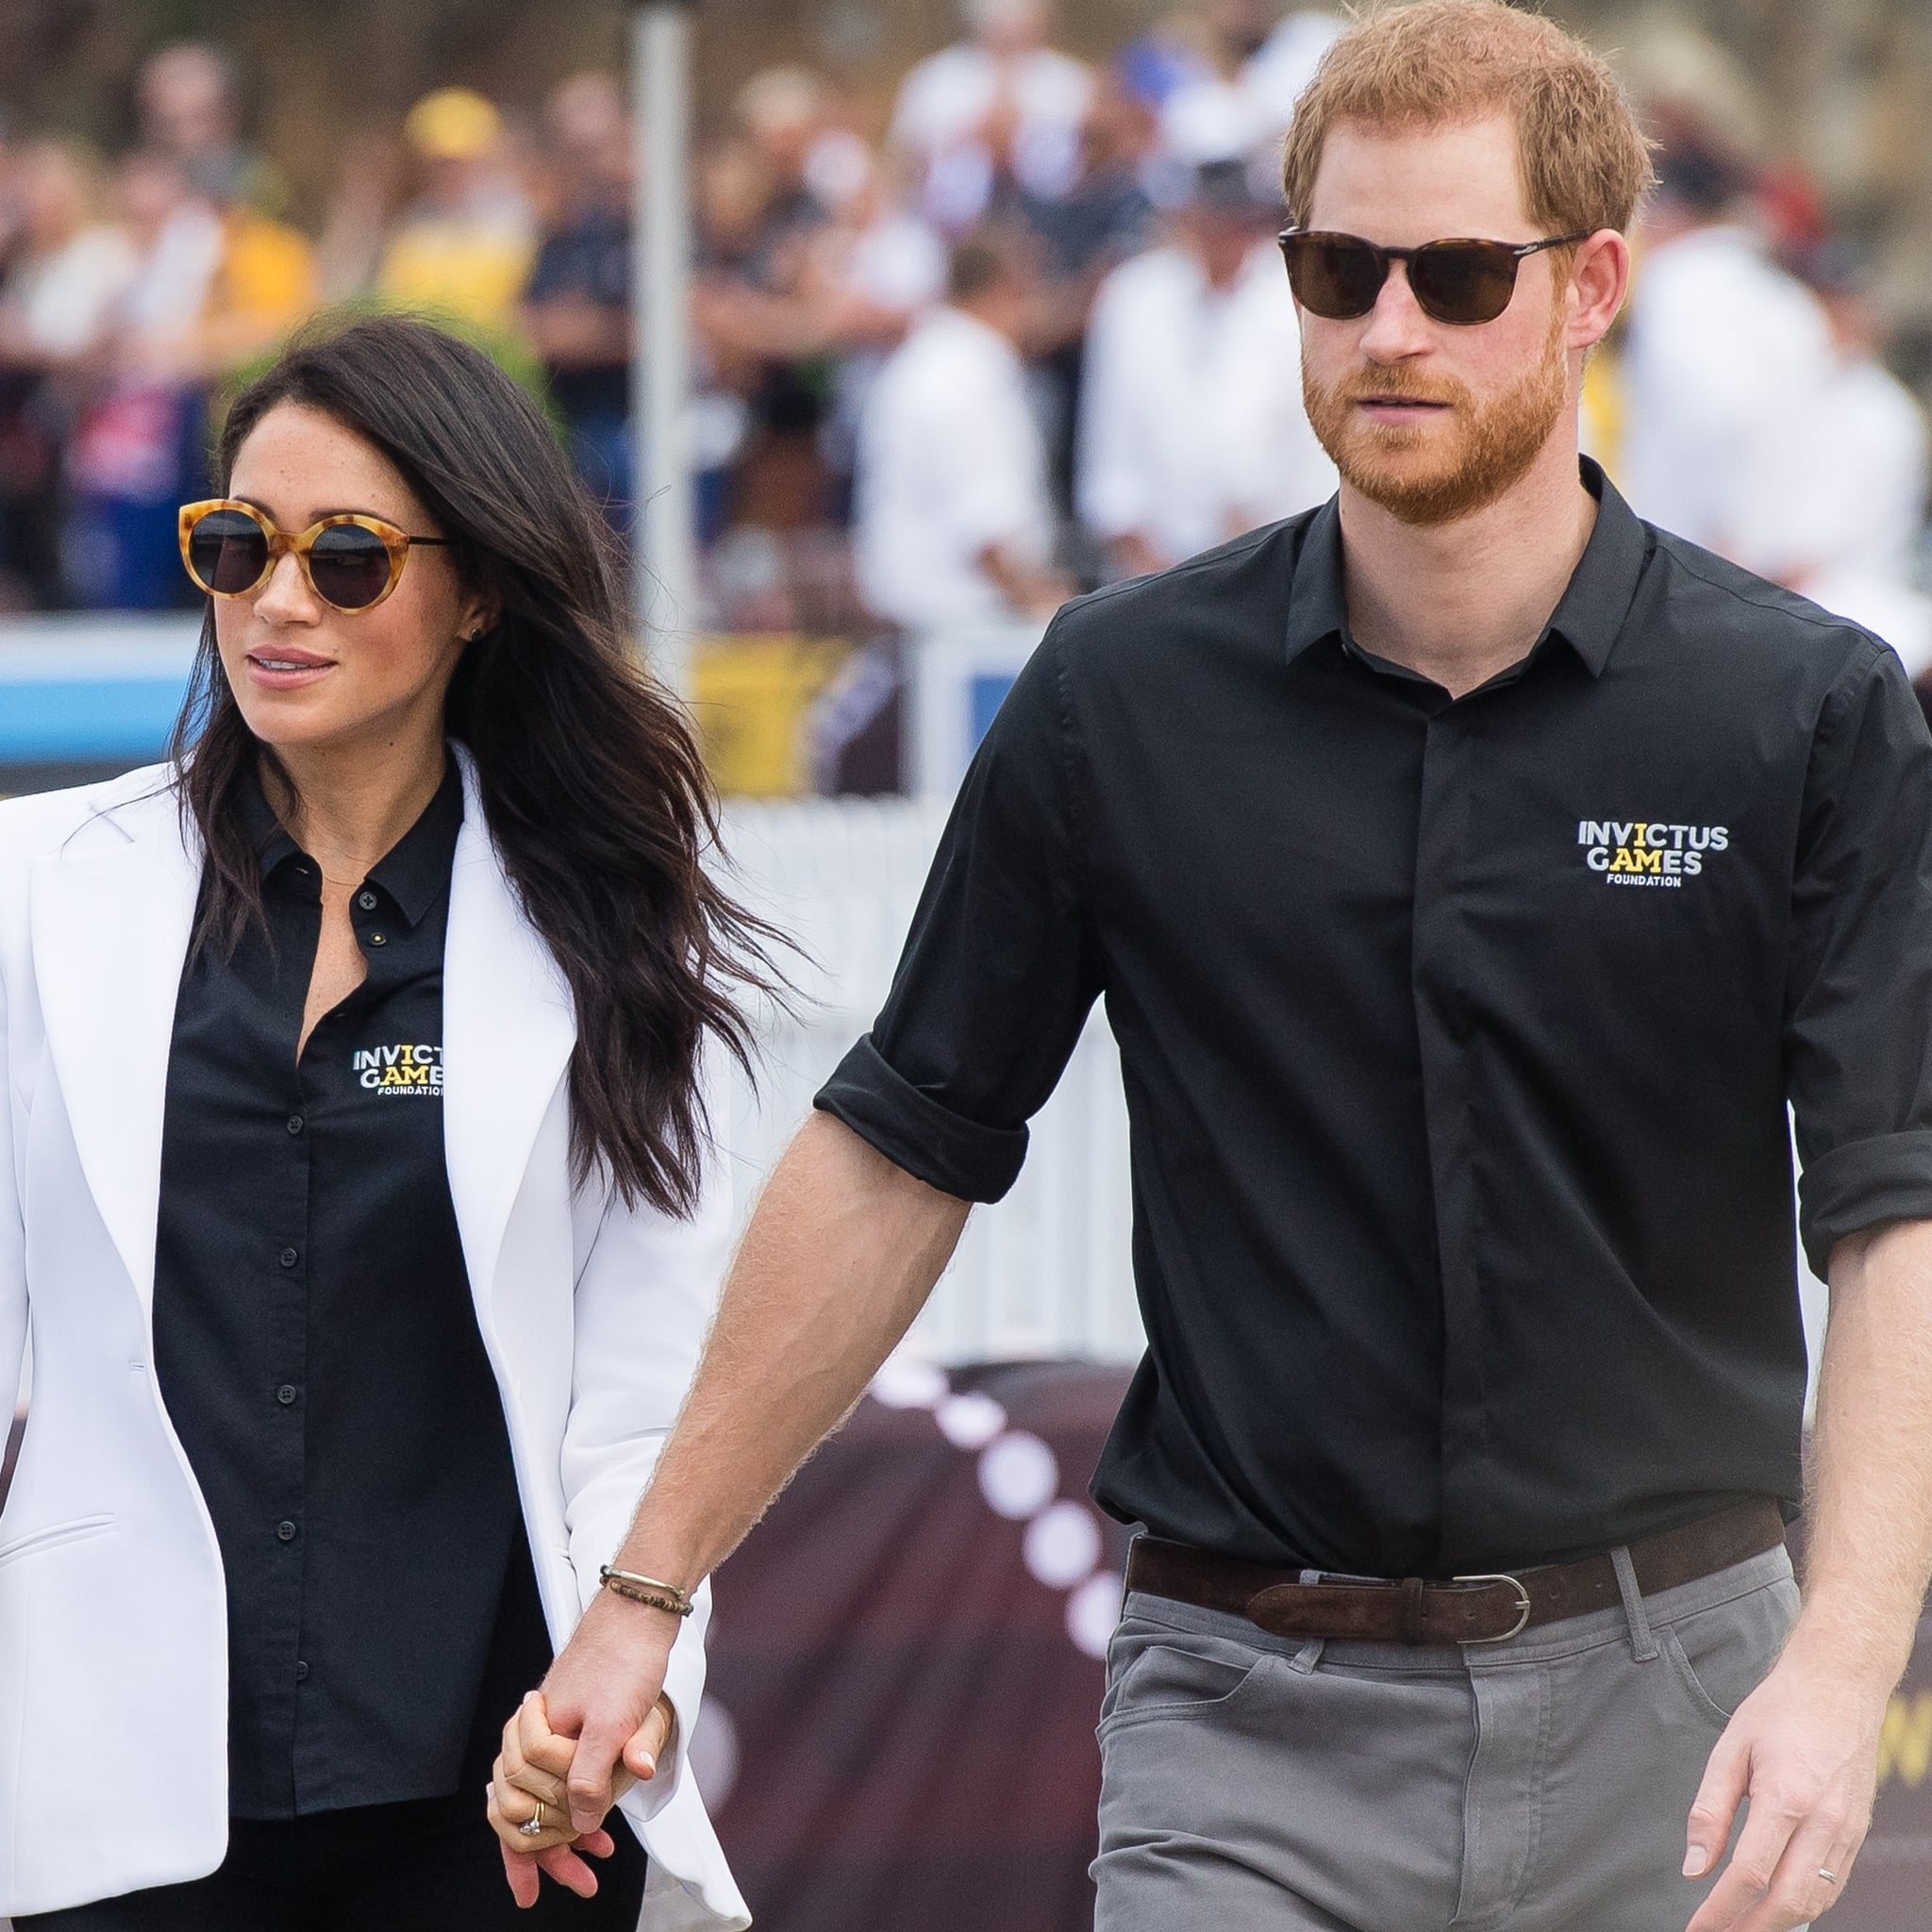 Flipboard: Prince Harry And Meghan Markle Get Emotional At